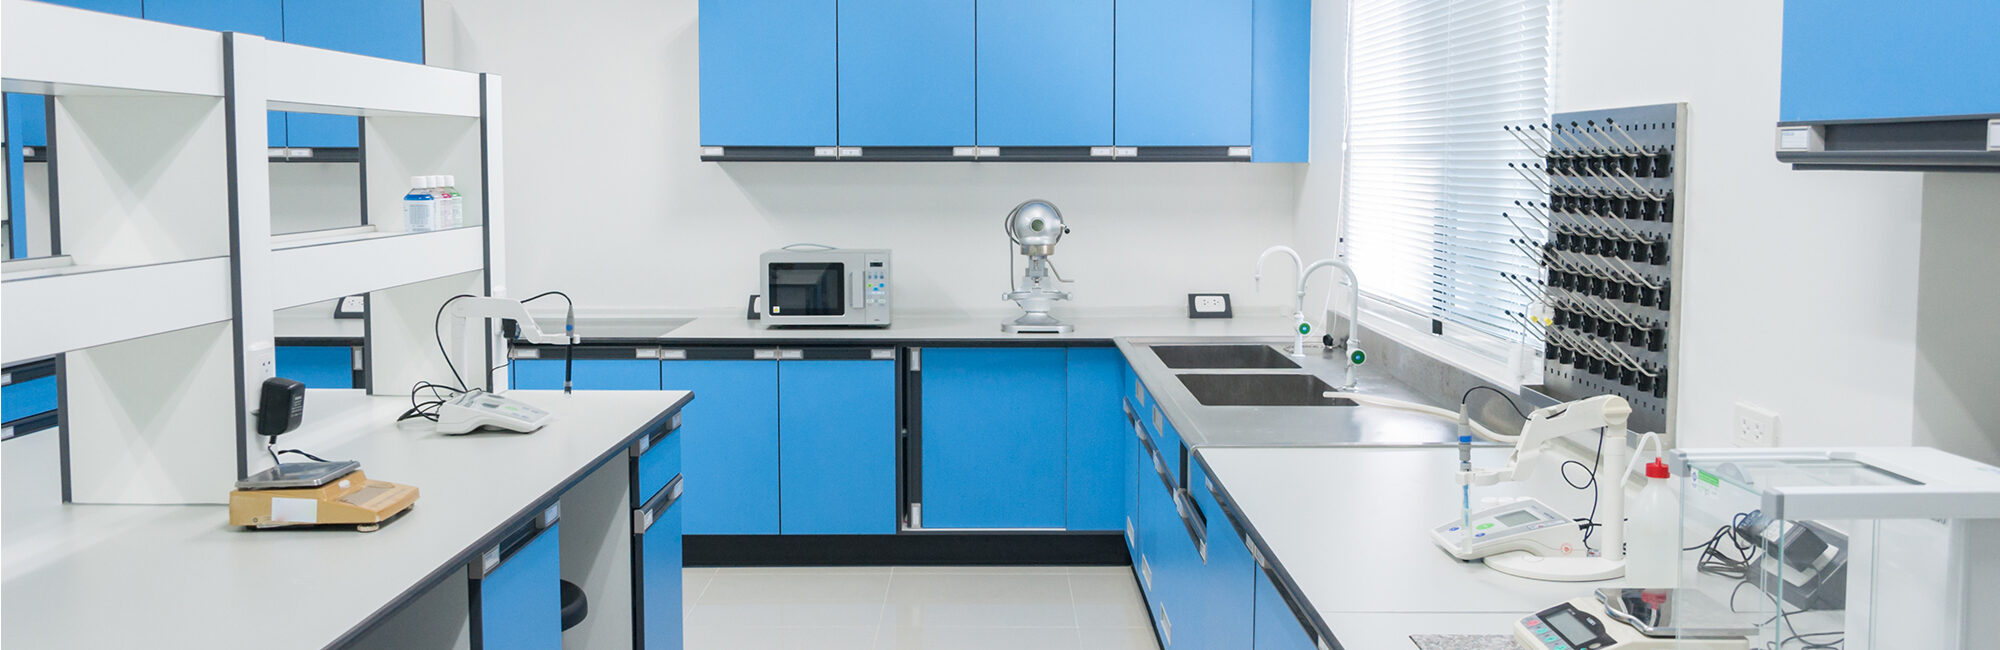 conditioned laboratory for textile testing with blue drawers